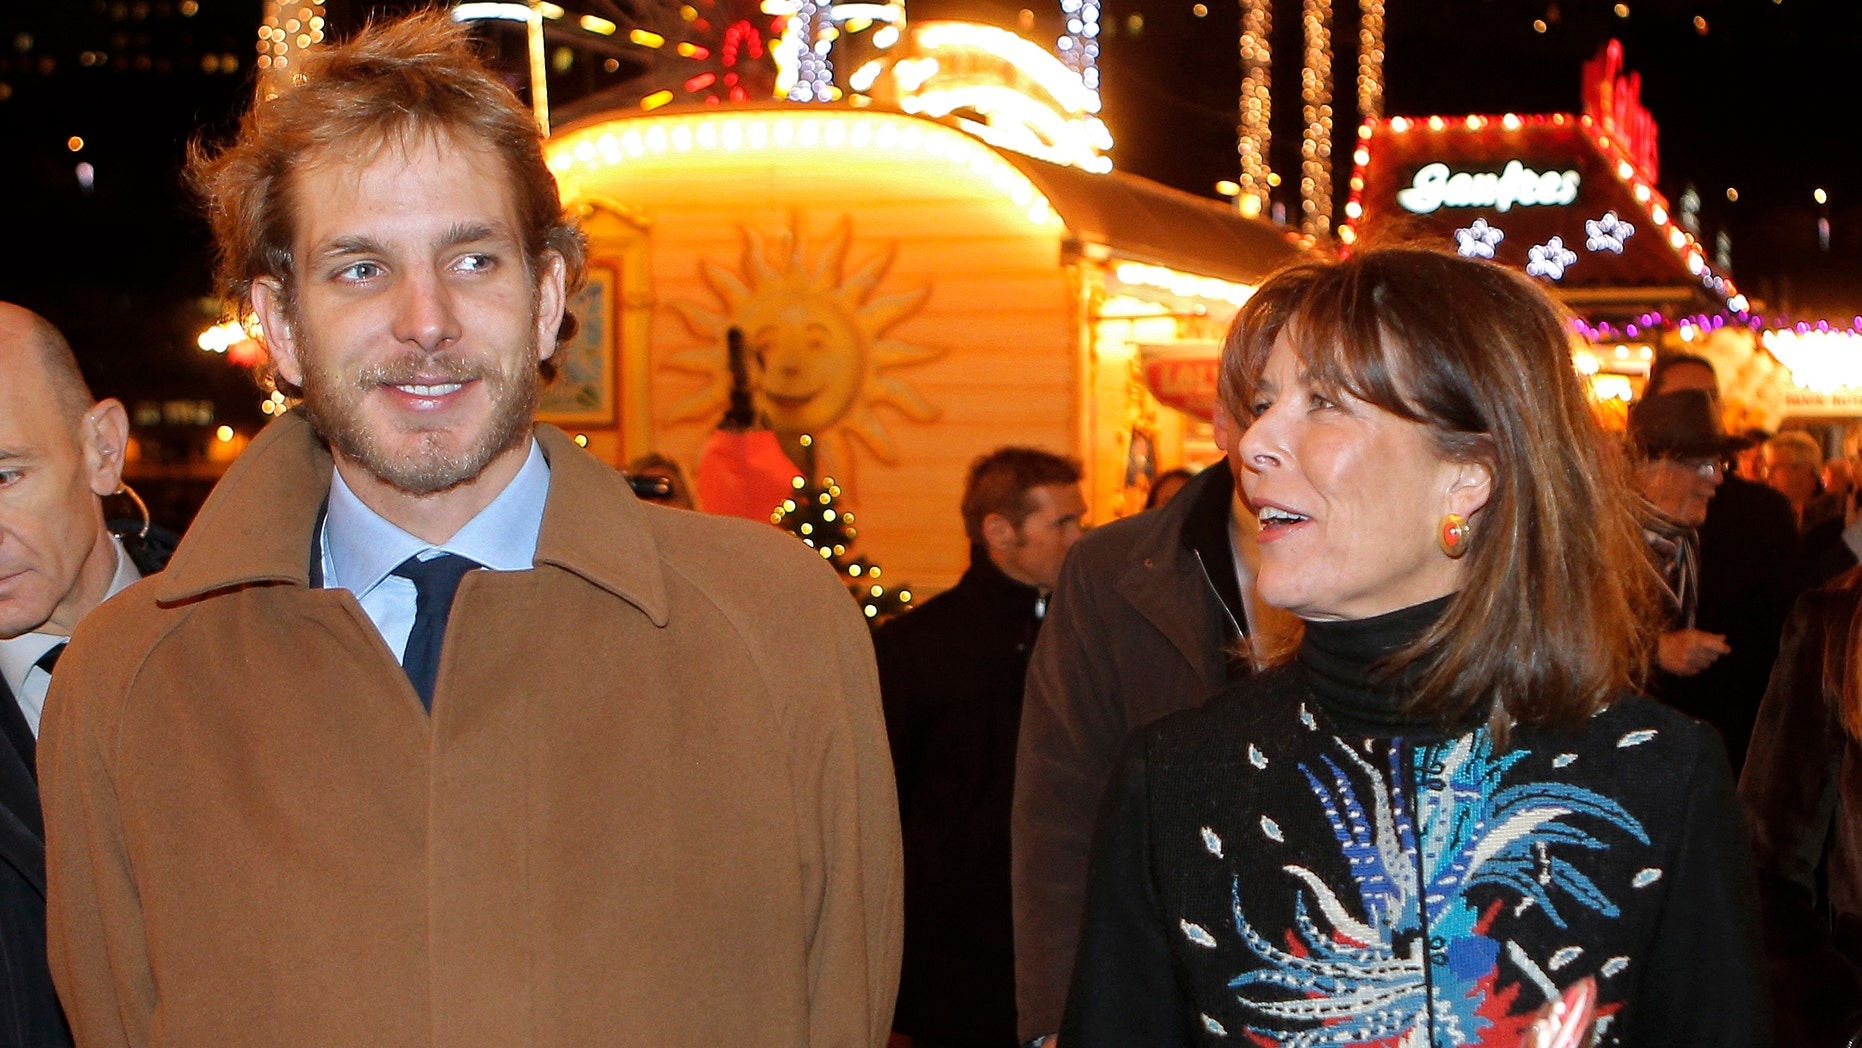 Princess Caroline of Hanover, right, and her eldest son Andrea Casiraghi,  attend the opening of the Christmas village in Monaco, in this file photo dated Wednesday, Dec. 5, 2012.  A baby boy is the latest addition to this jet set royal family, it is announced Friday March 22, 2013, born to Andrea Casiraghi and his Colombian fiancee heiress Tatiana Santo Domingo. Mother and child are understood to be in good health. (AP Photo/Lionel Cironneau, file)